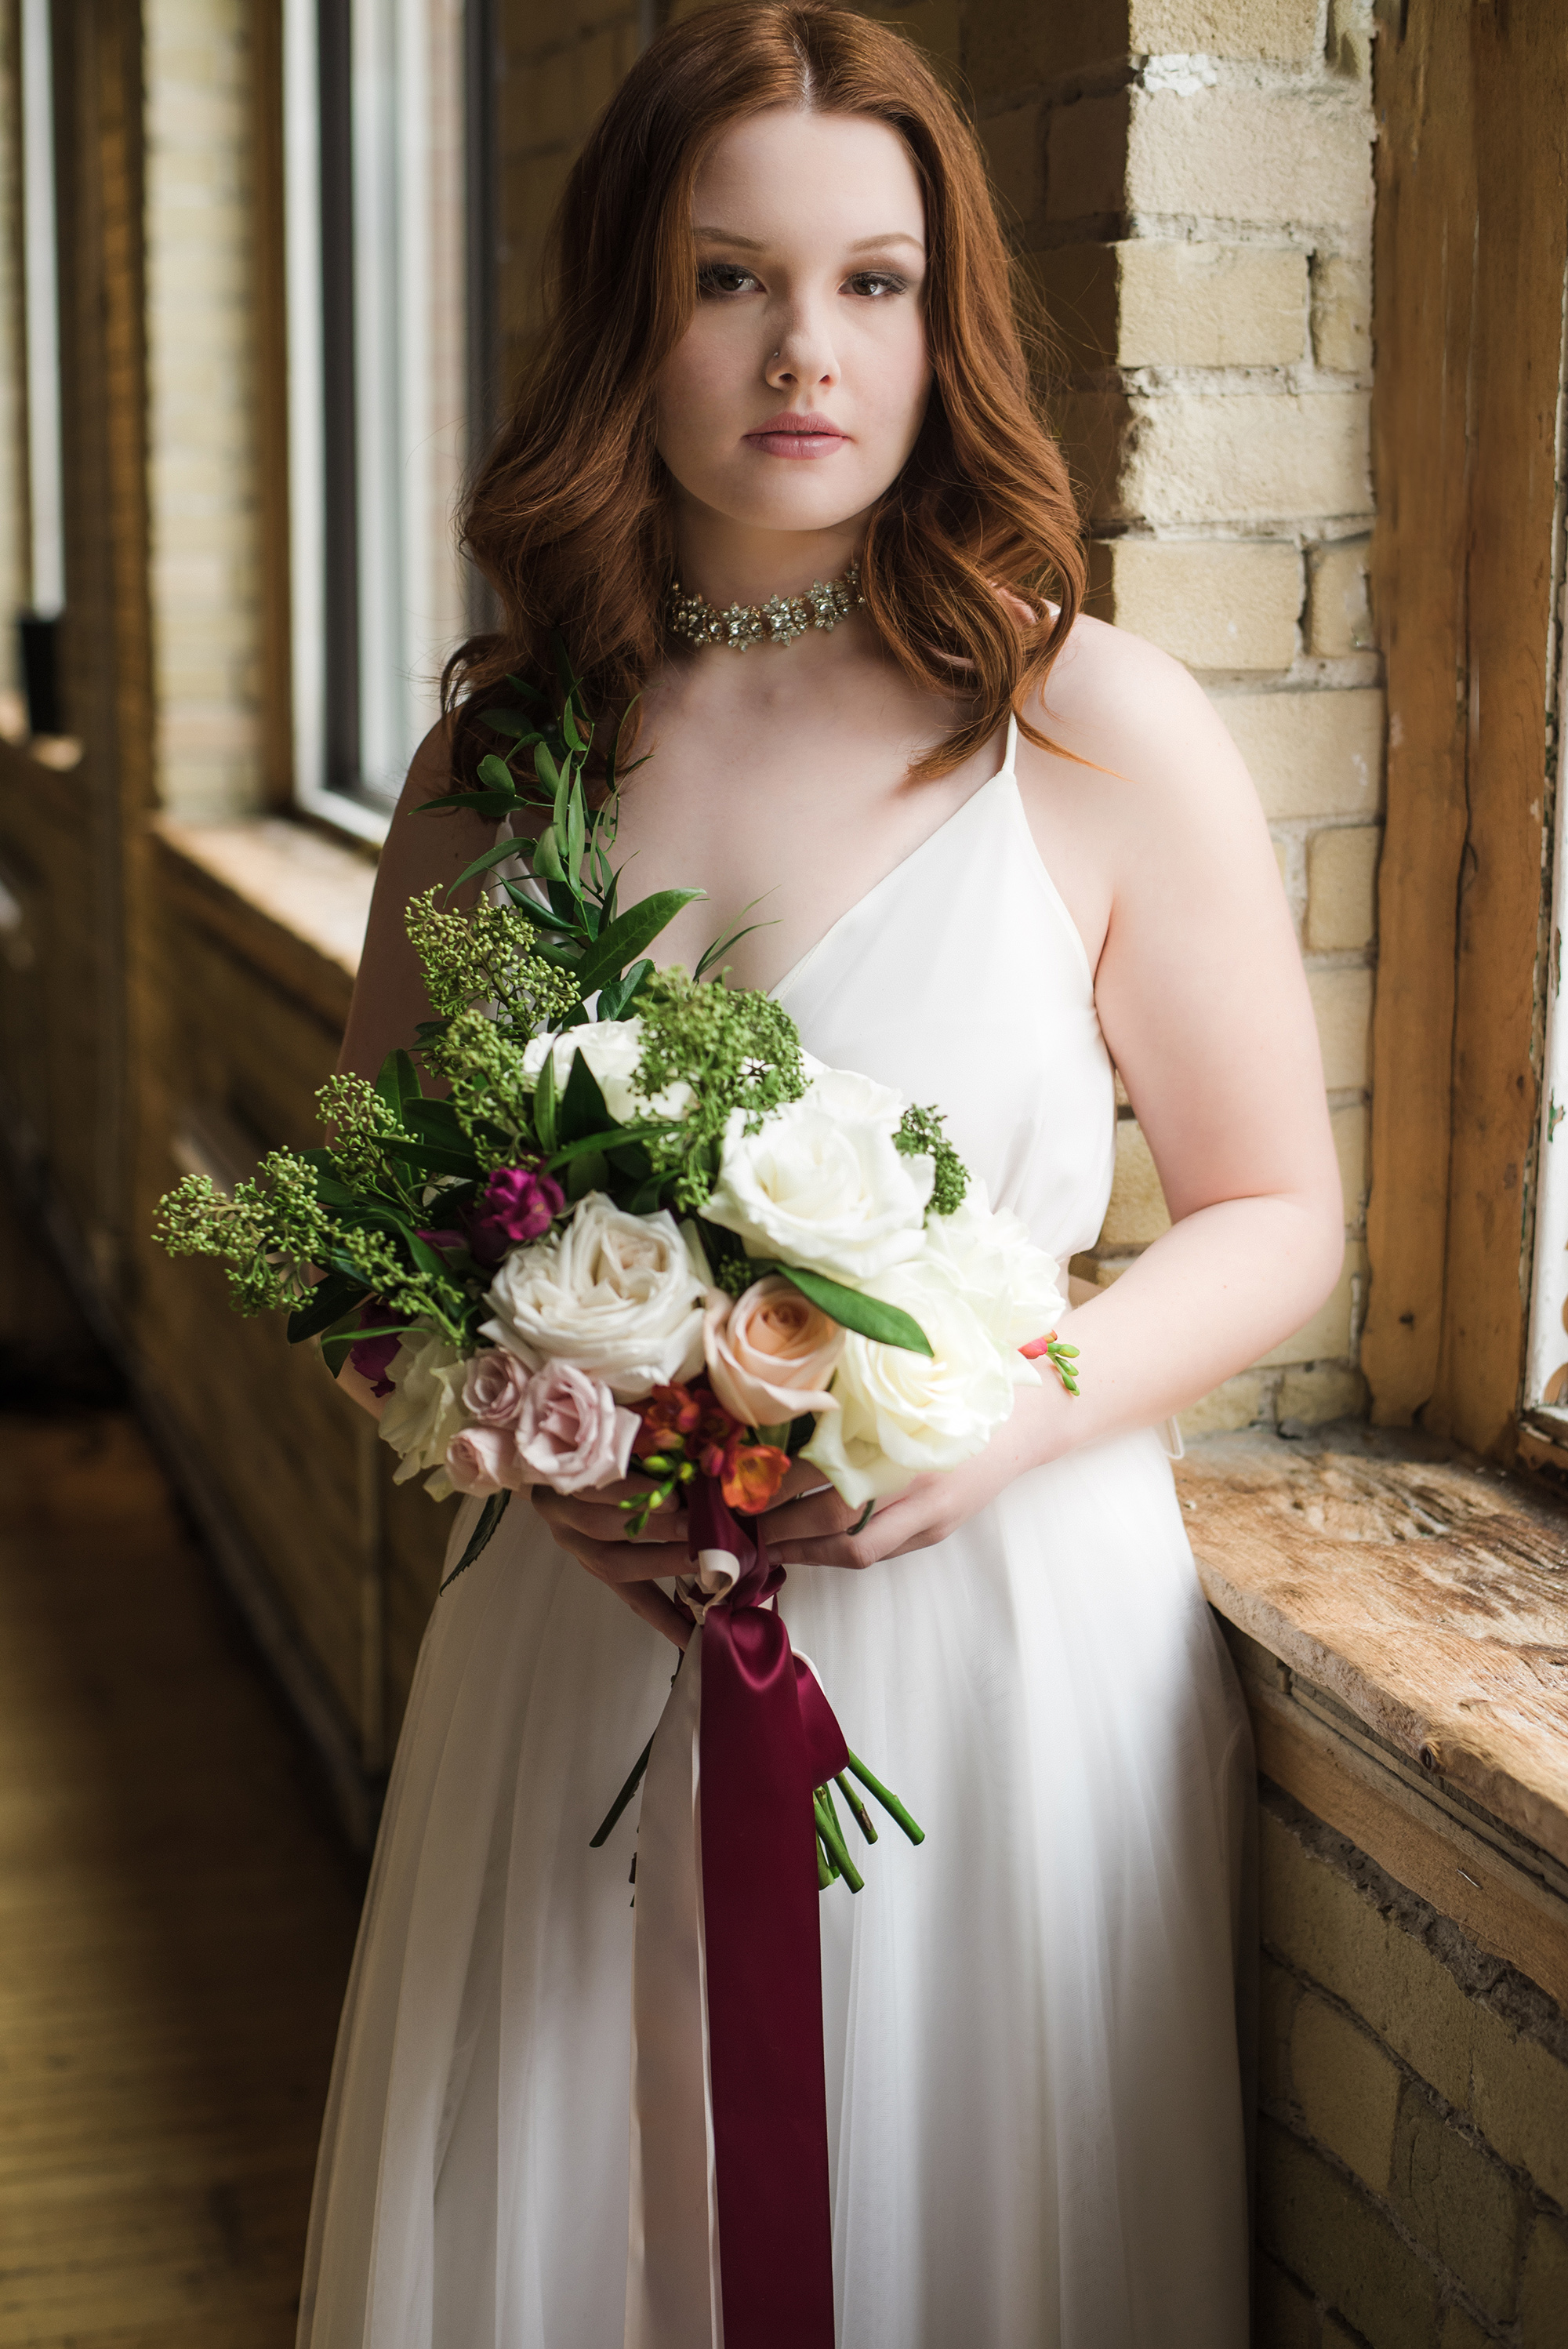 Bride_Getting_Ready_Flowers_Bridal_Portrait_Verveine_Studios